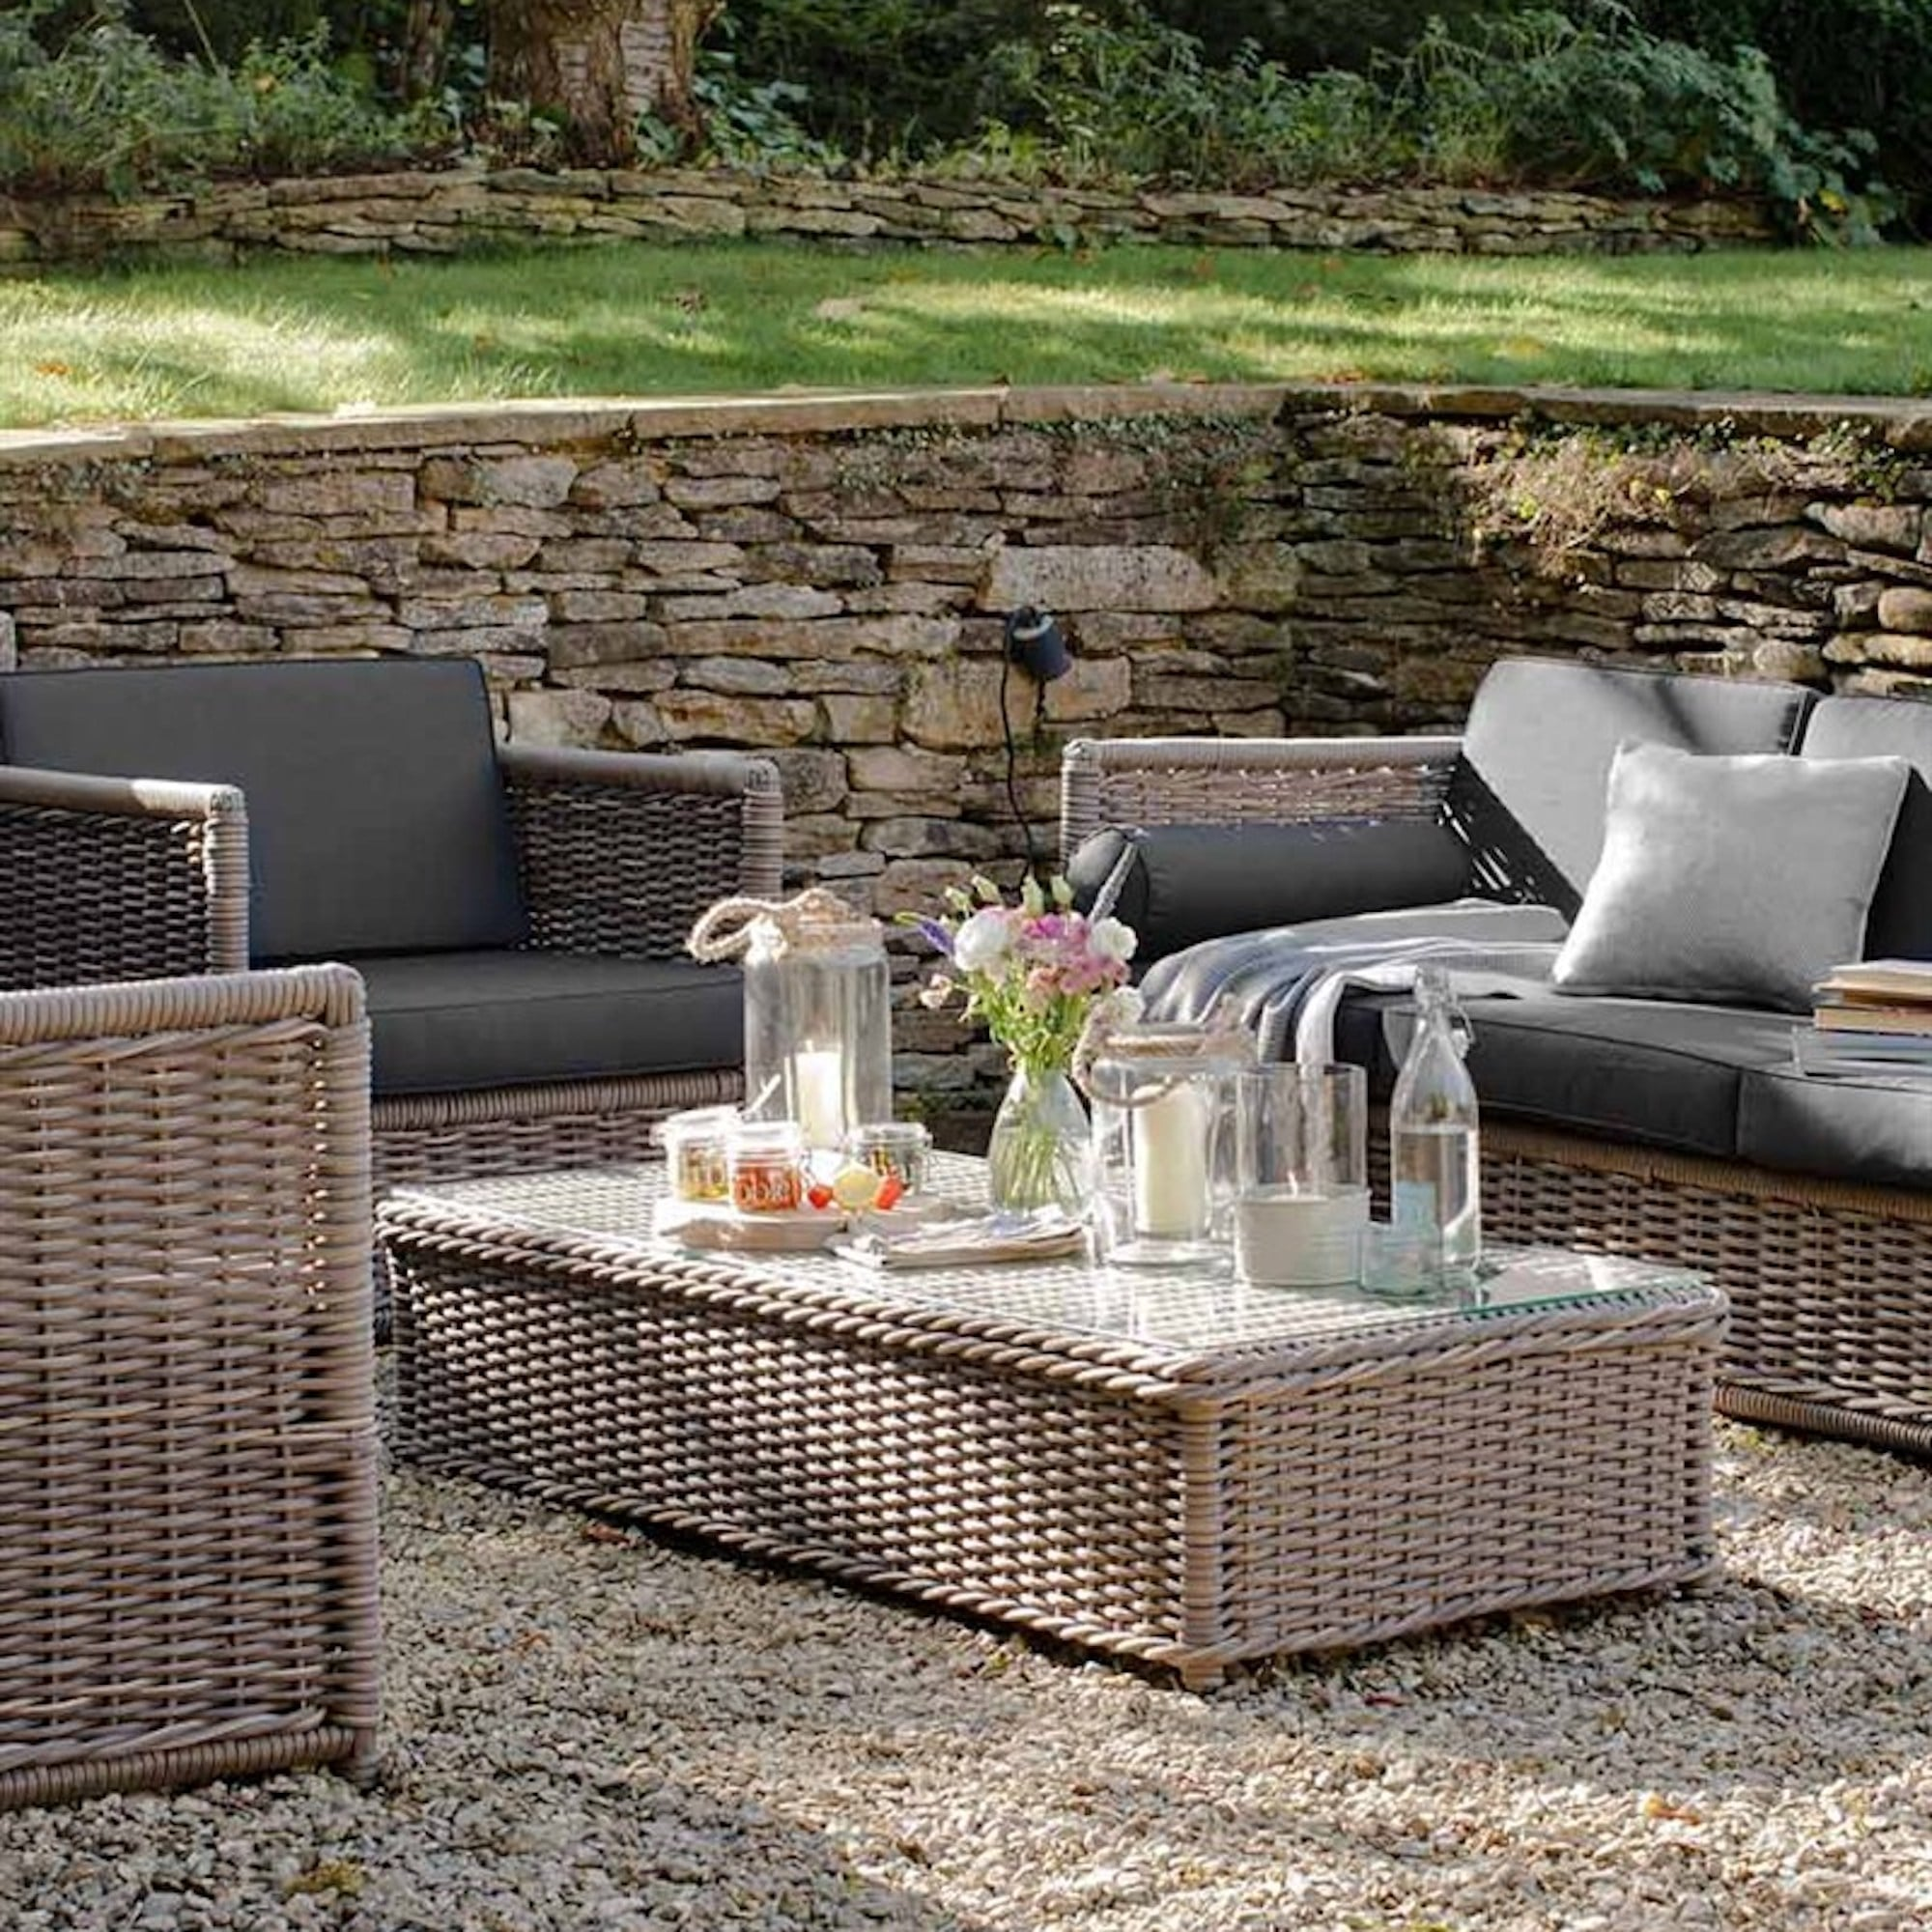 AuBergewohnlich Harting Outdoor Lounge Set   Sofa, 2 Chairs U0026amp; ...